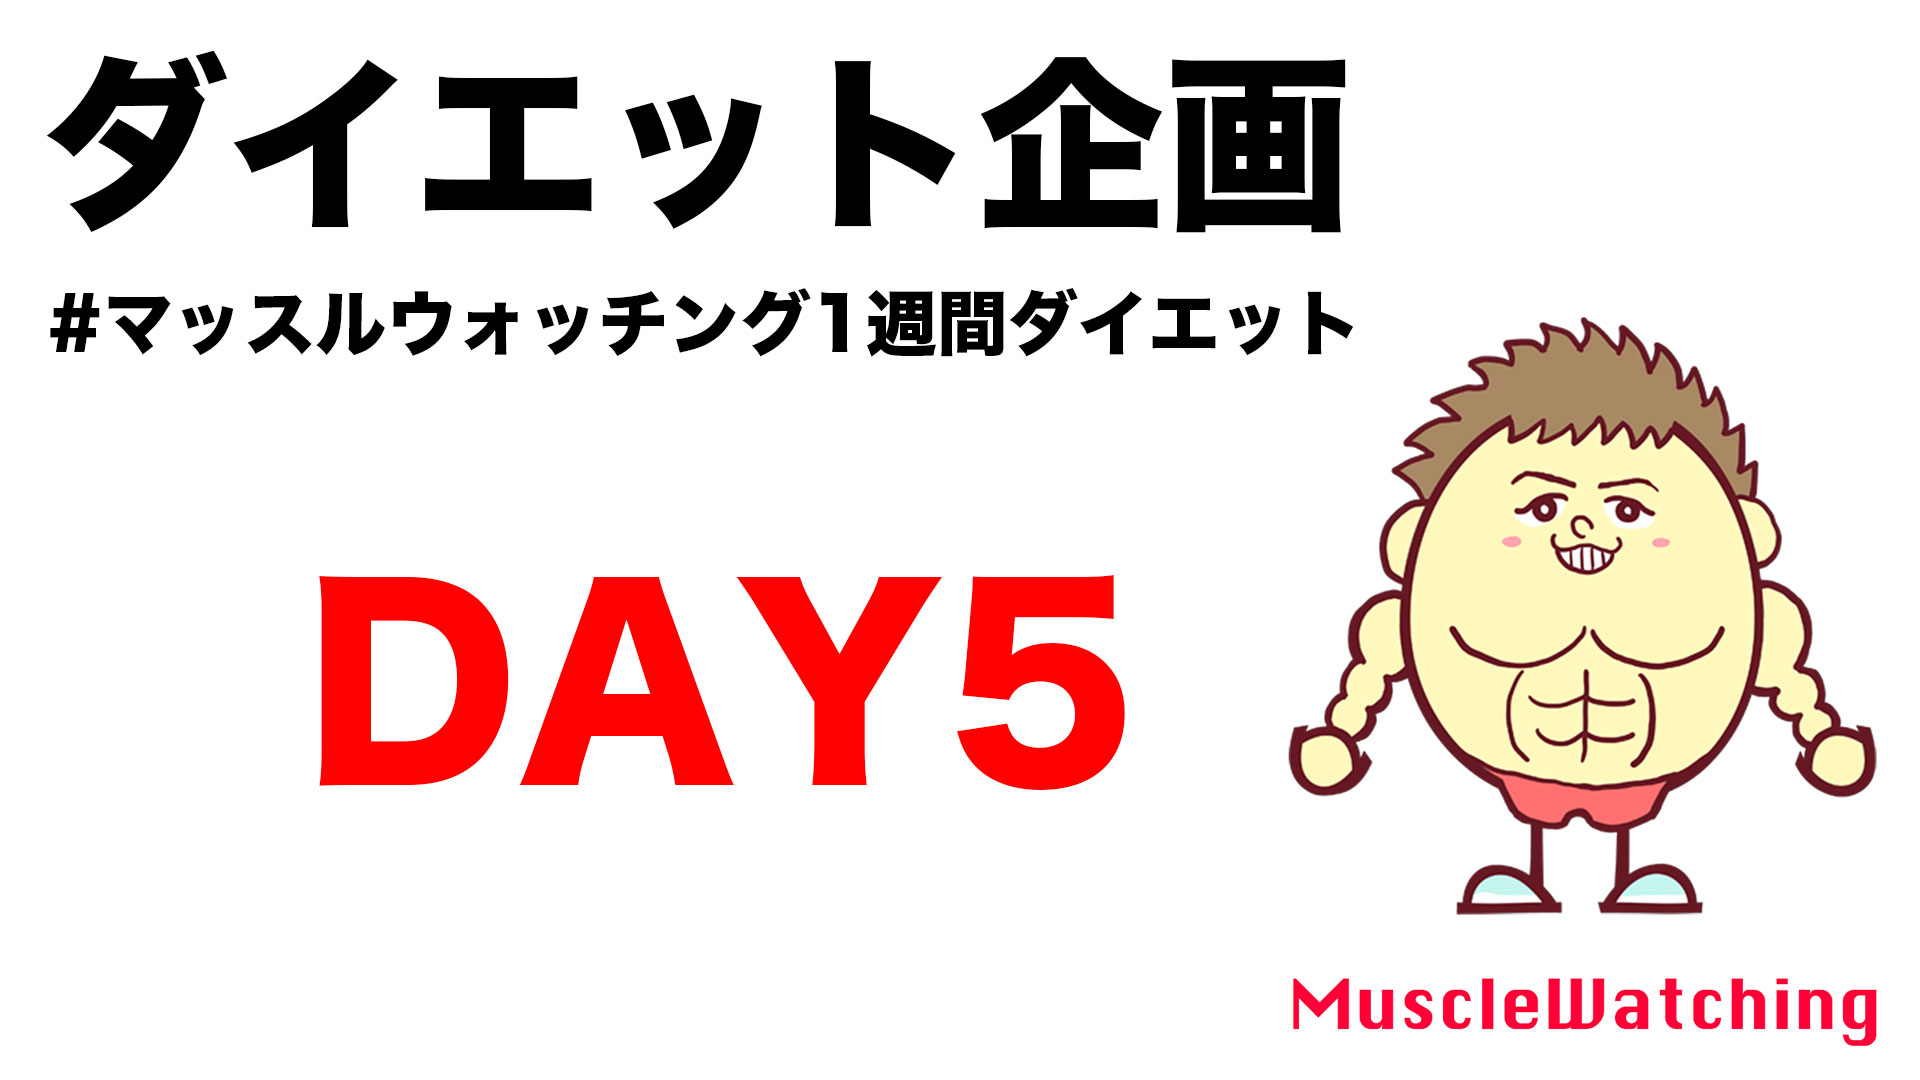 【DAY5】女性限定1週間ダイエット企画 | Muscle Watching